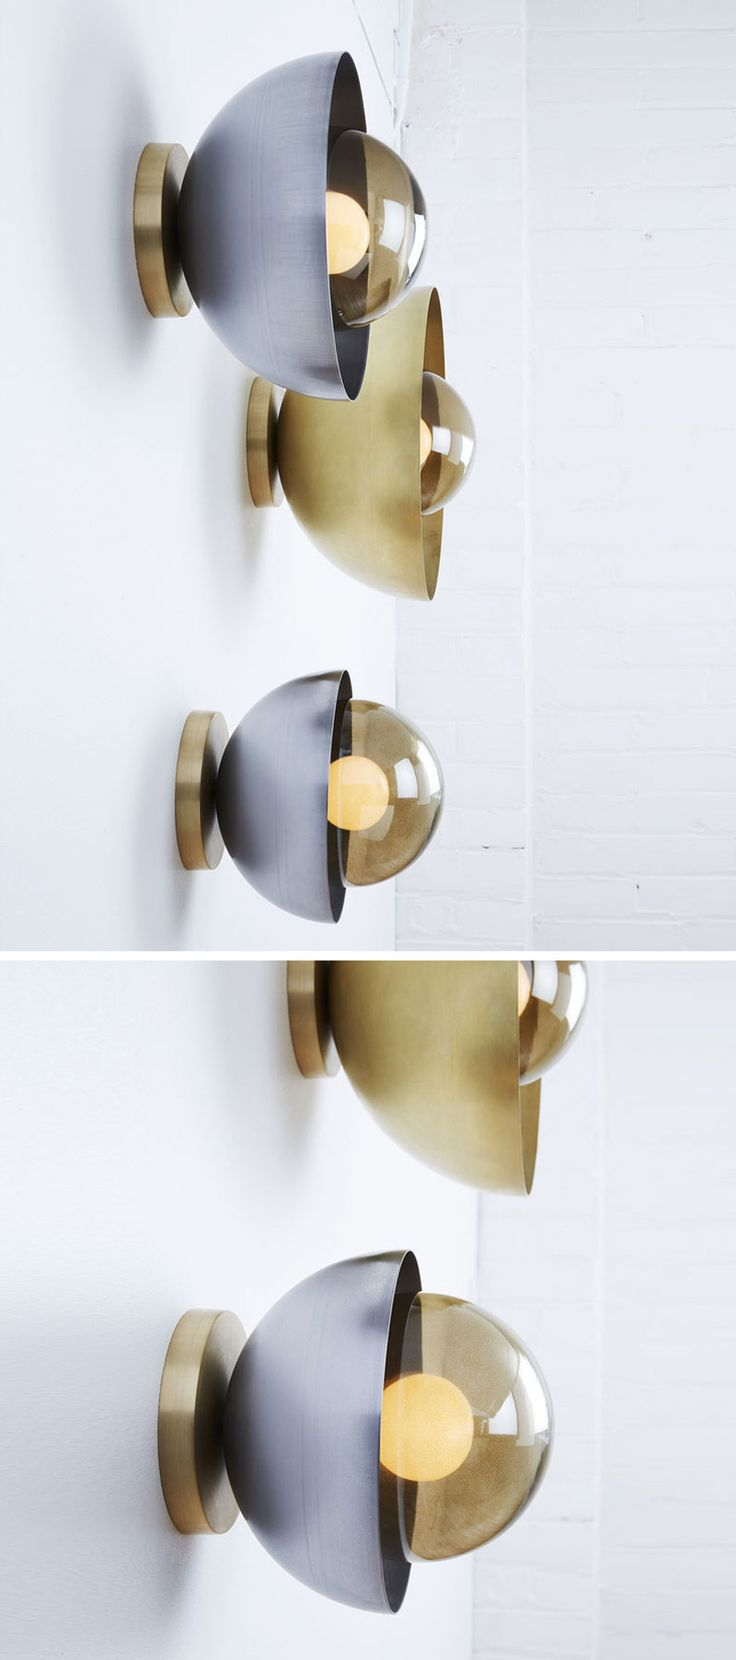 The metallic materials allow these modern wall light fixtures to reflect light, creating a soft glow in your interior.